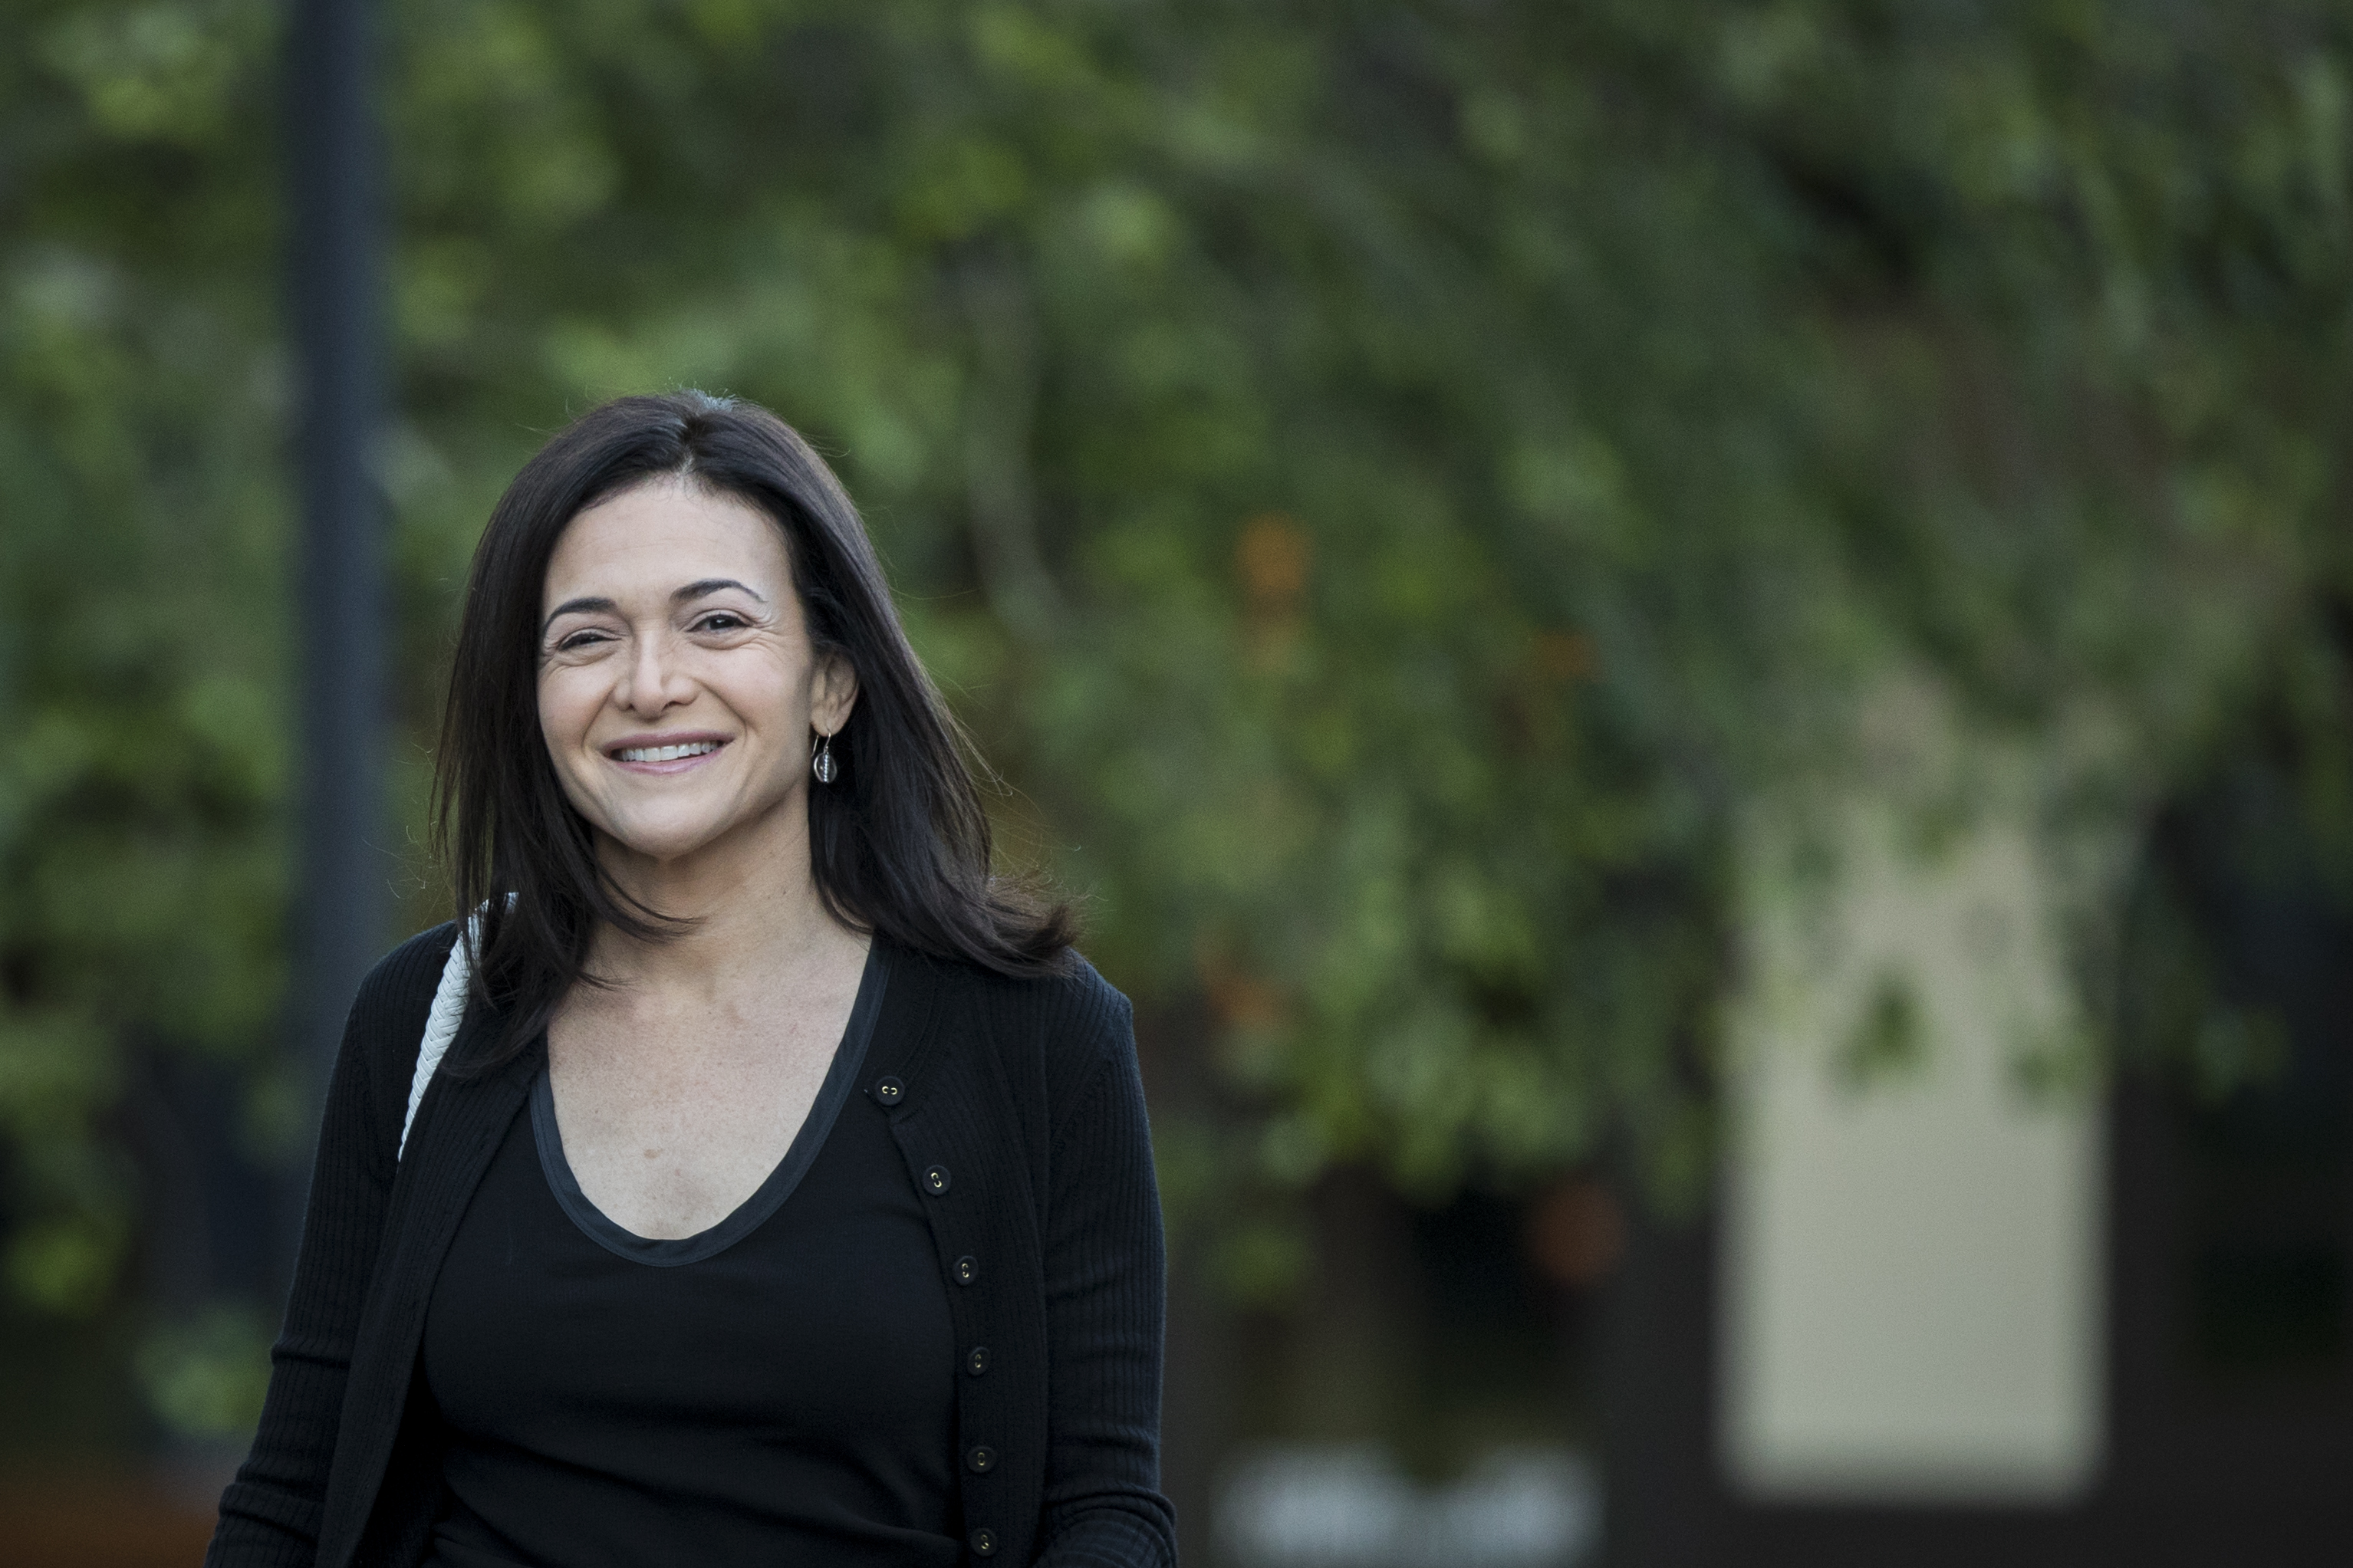 Facebook COO Sheryl Sandberg owns nearly10% of the company via shares she received from her late husband Dave Goldberg. (Photo by Drew Angerer/Getty Images)